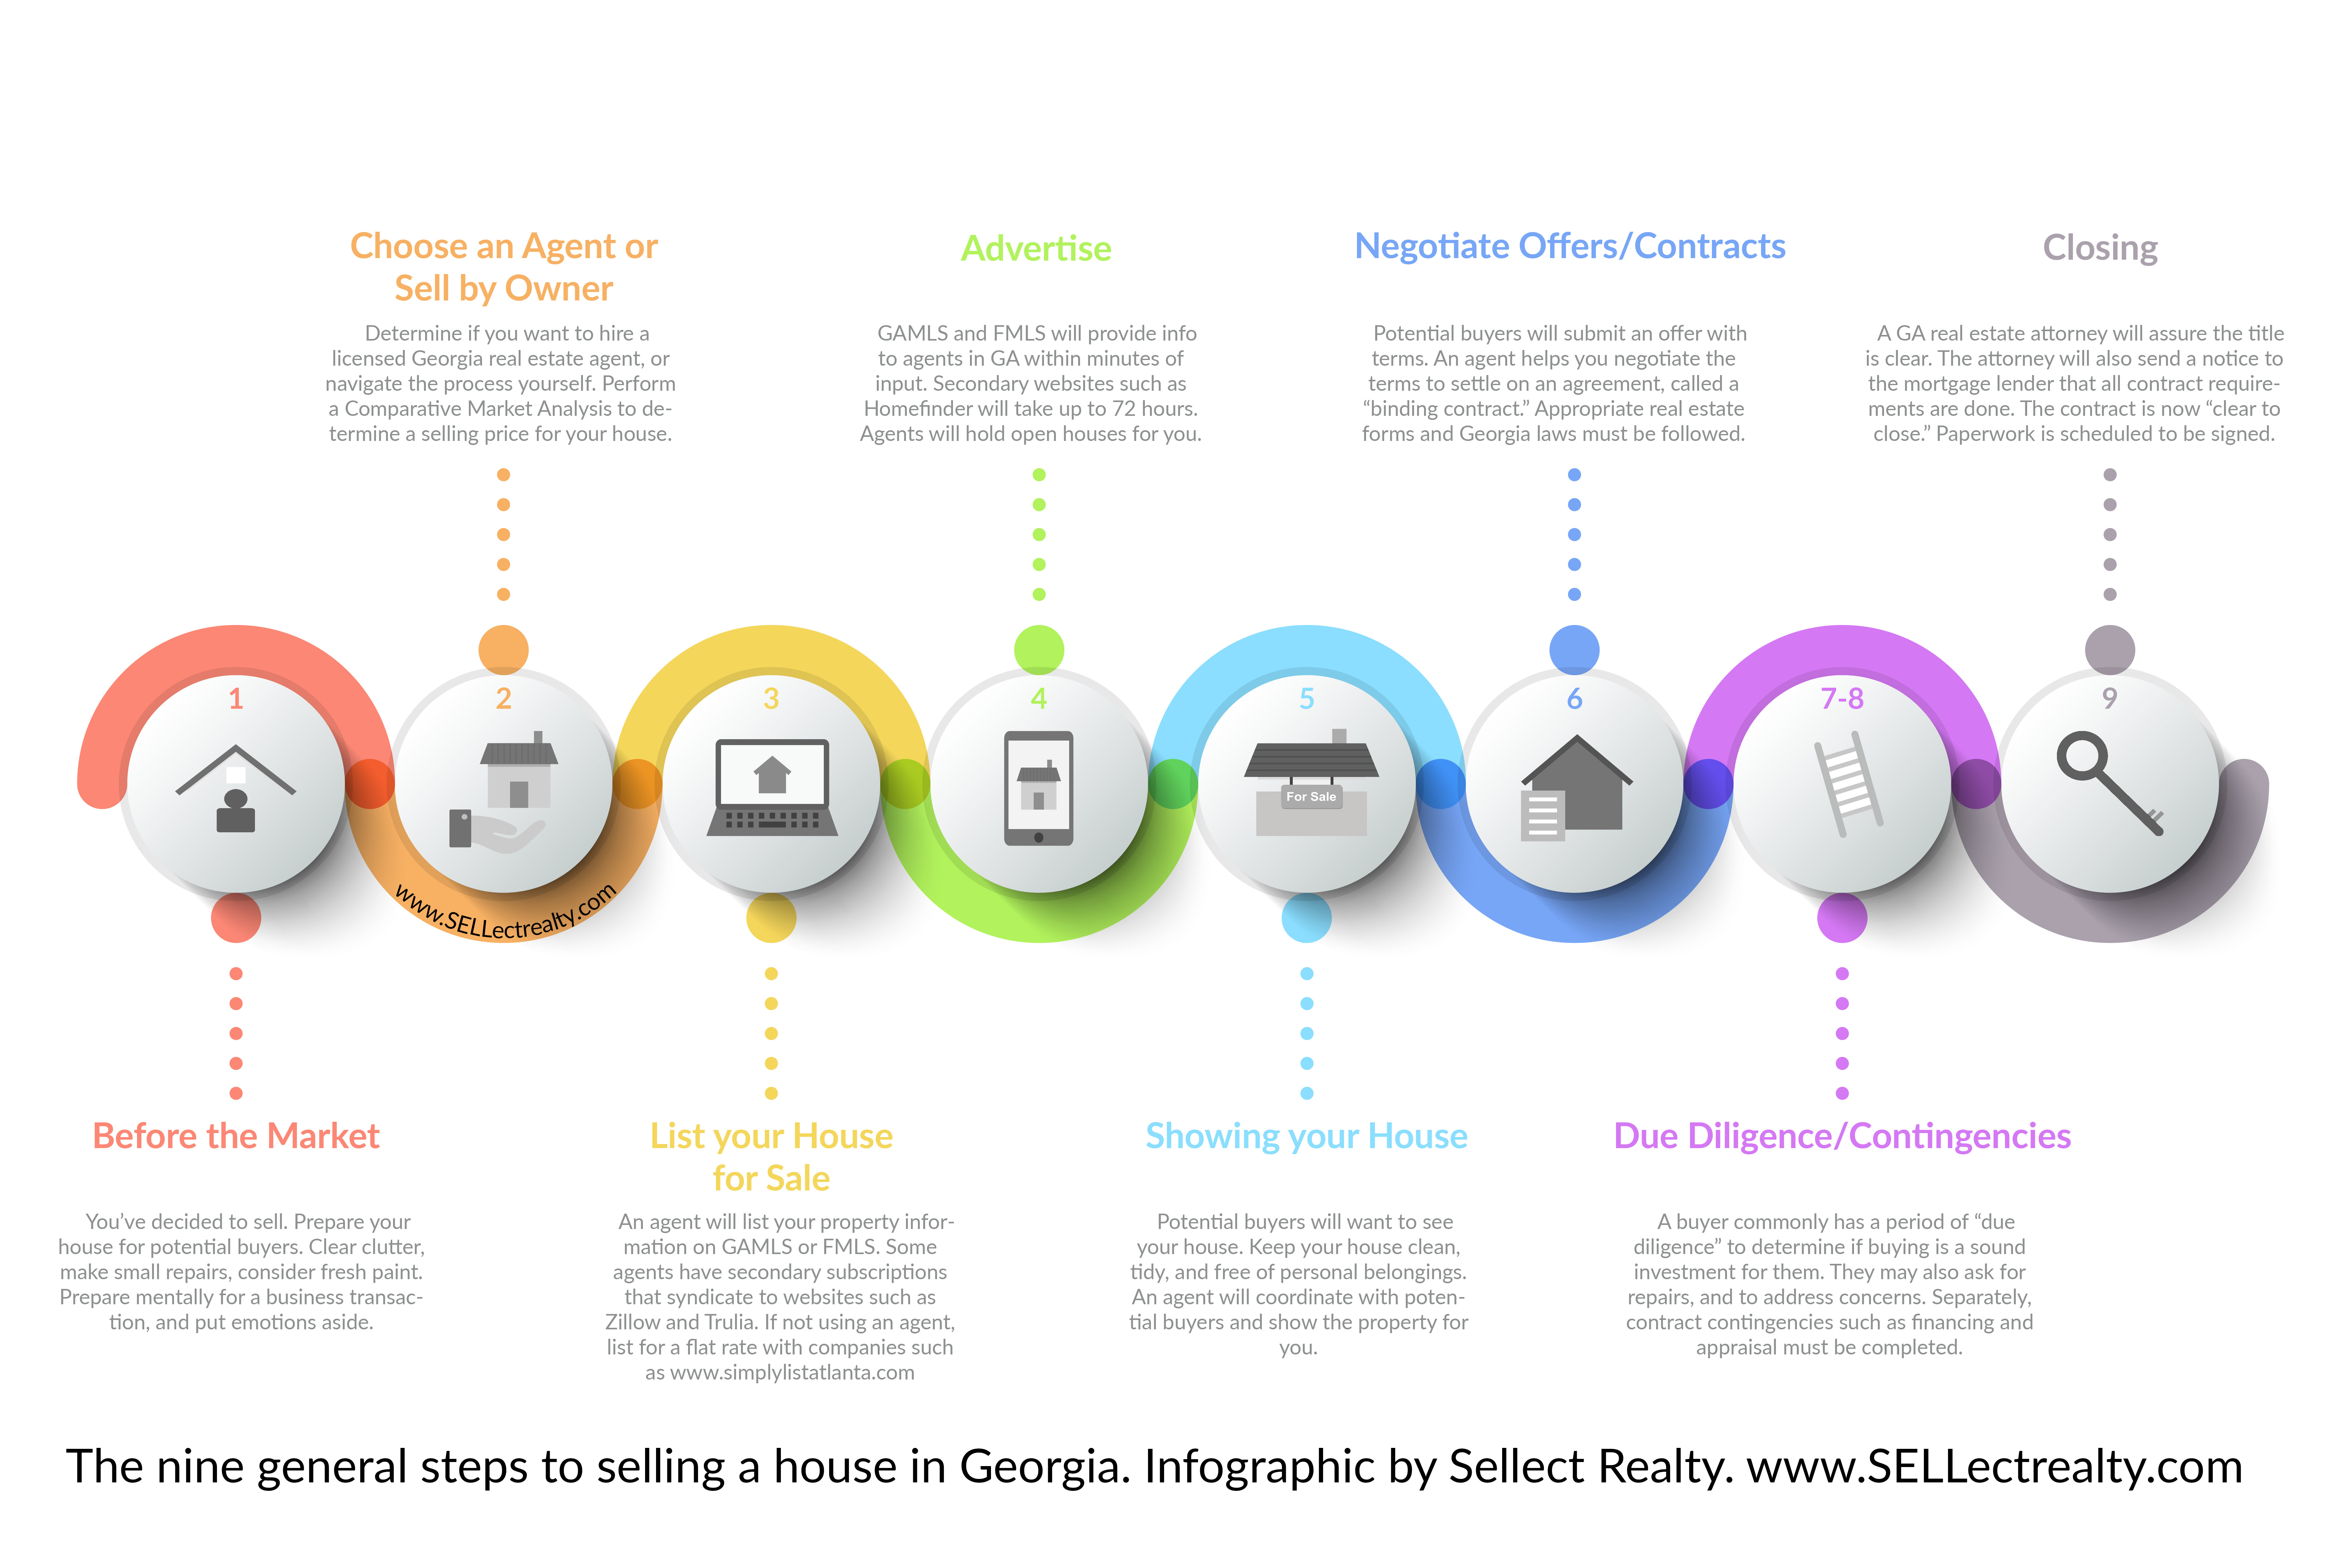 Infographic of the nine general steps to selling a house in Georgia with or without the Georgia MLS